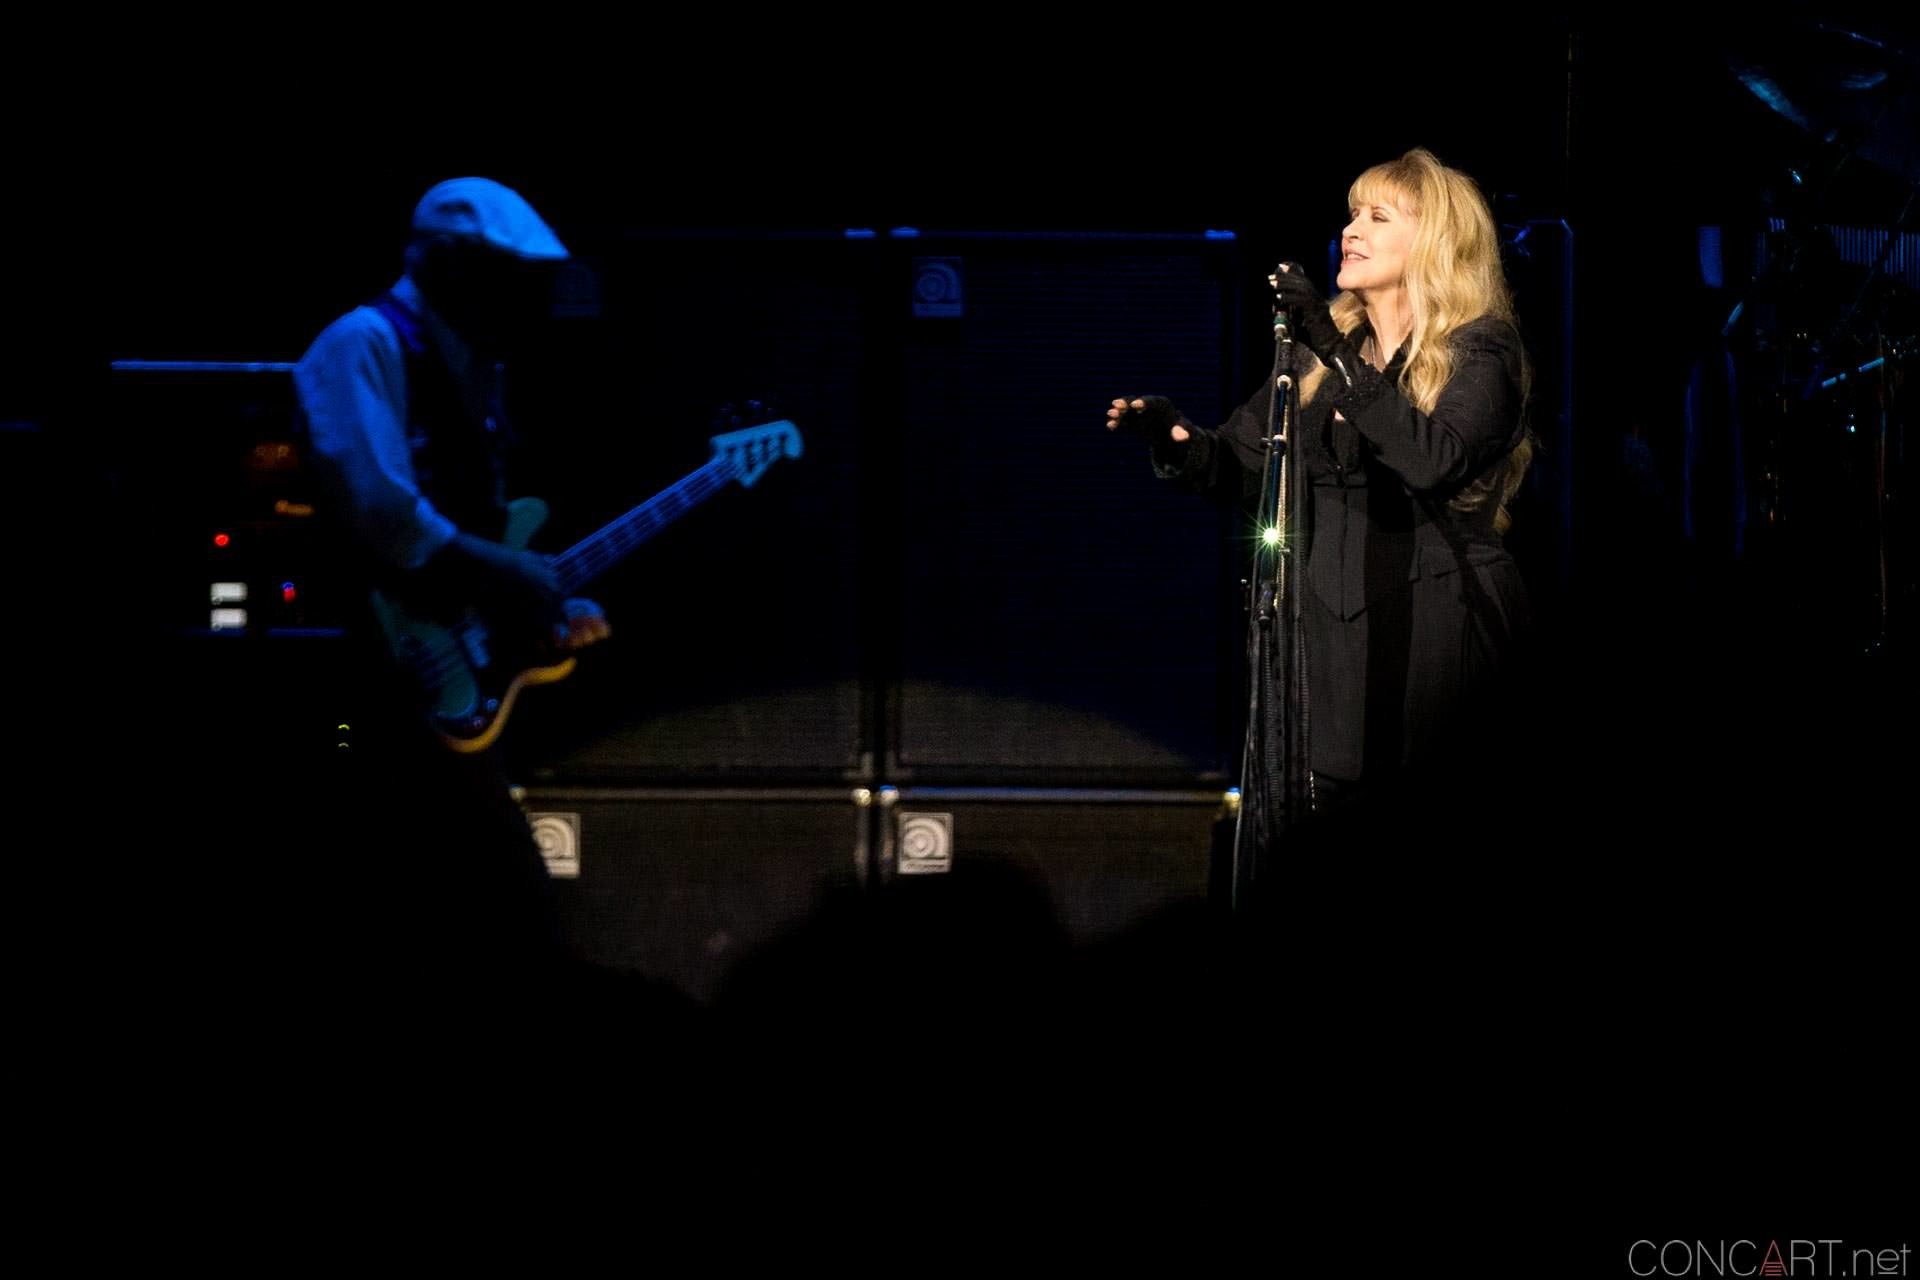 010-fleetwood-mac-live-indianapolis-bankers-life-fieldhouse-2014